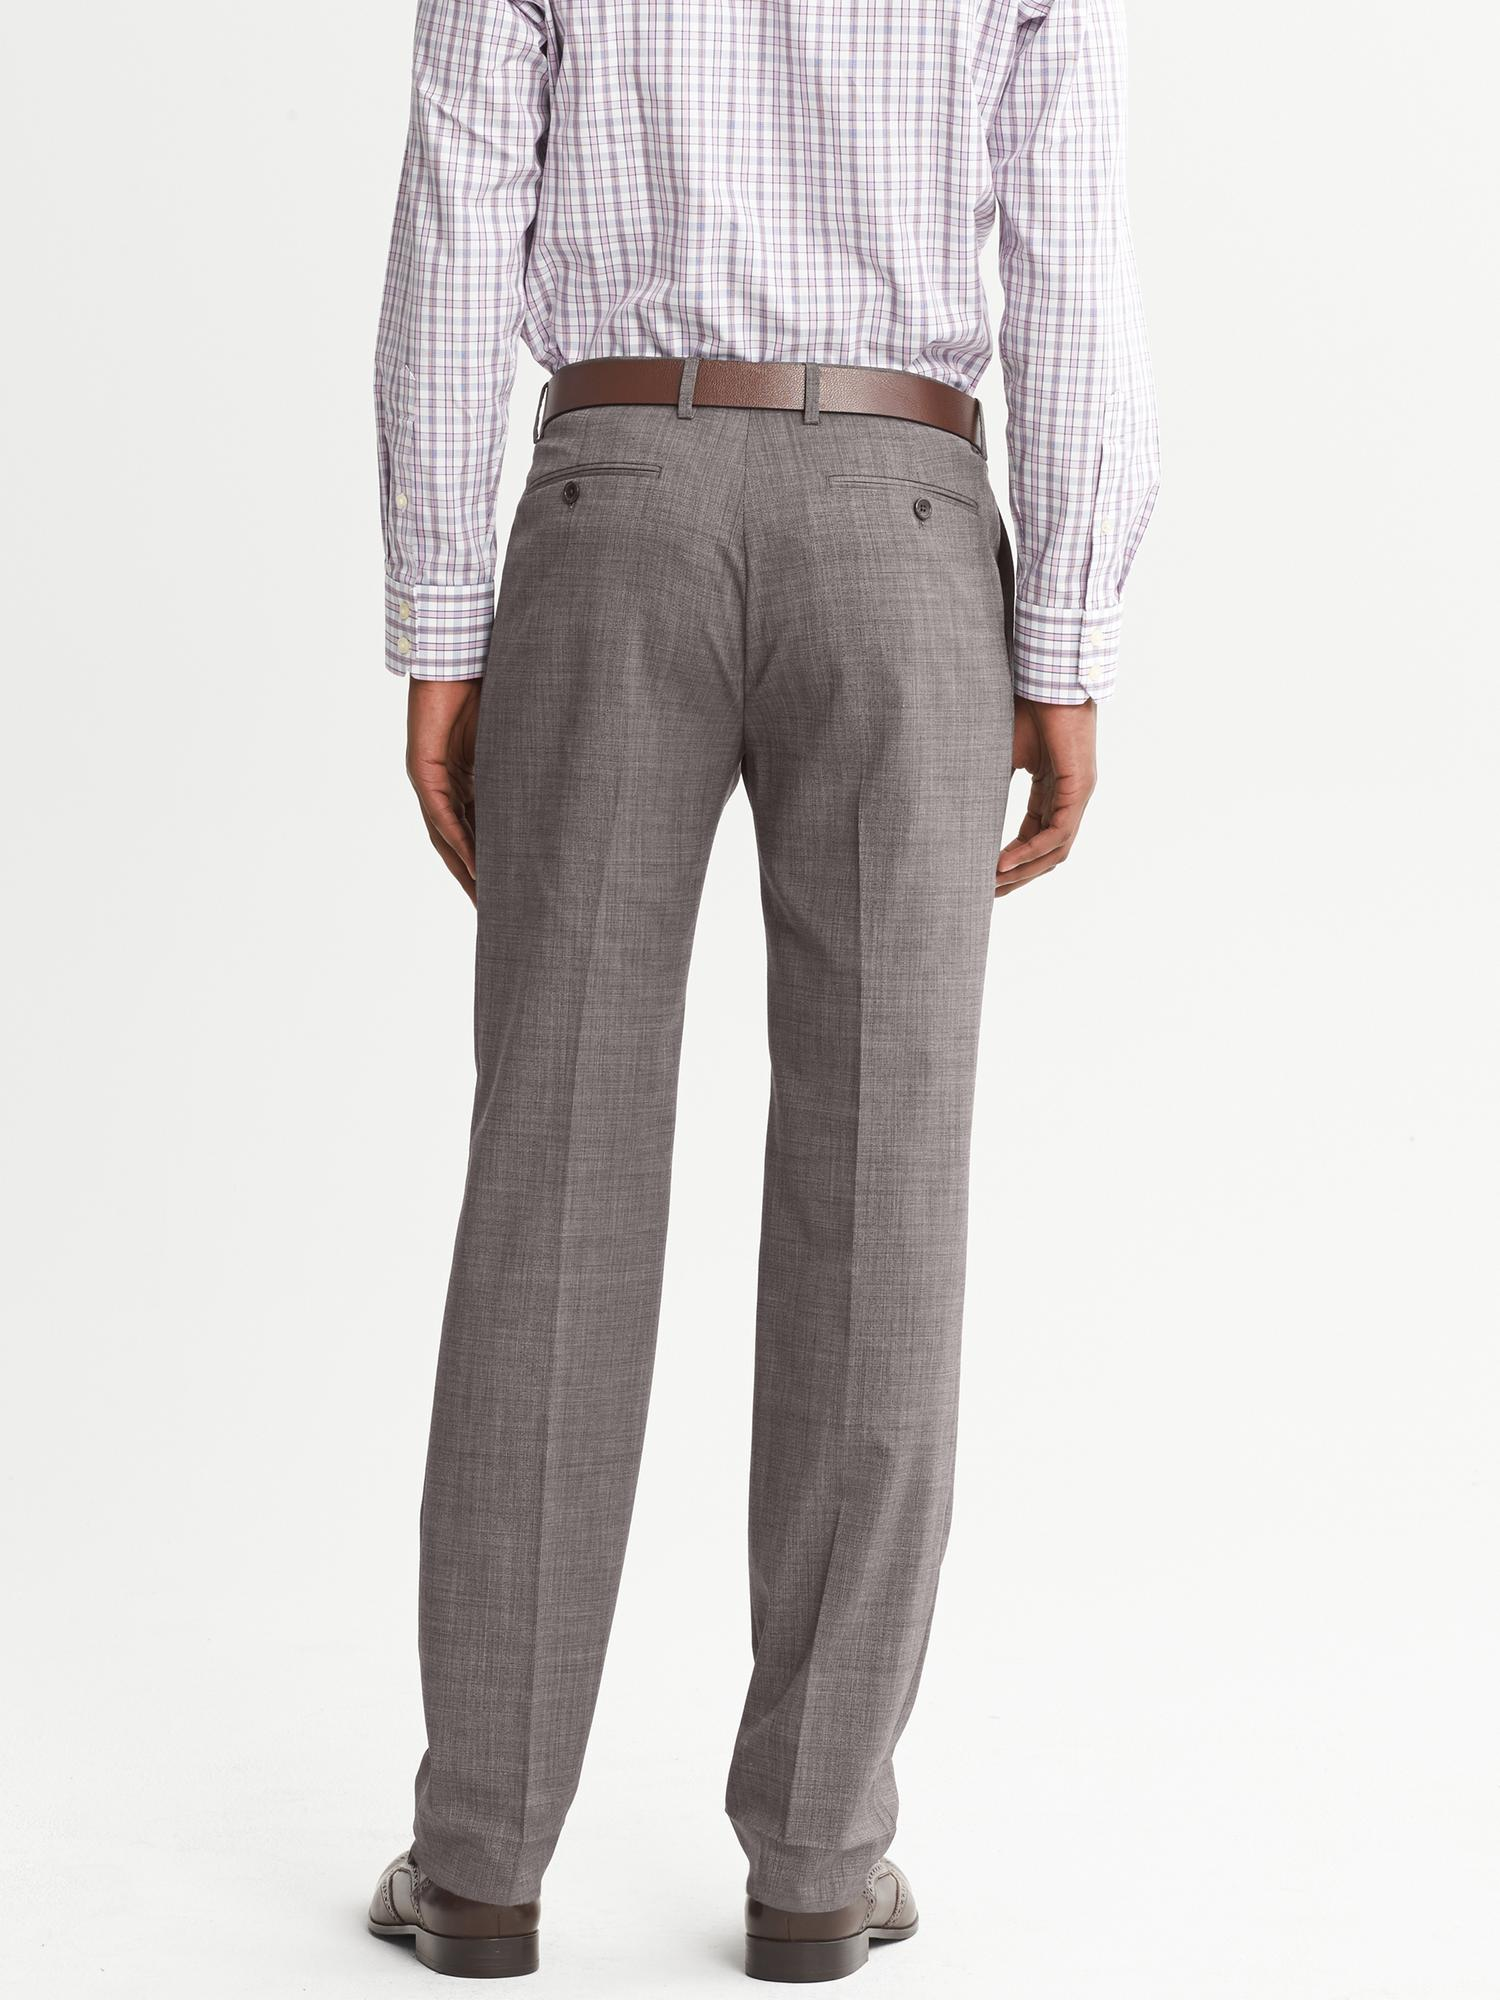 Banana Republic Tailored Slim Fit Taupe Wool Dress Pant In